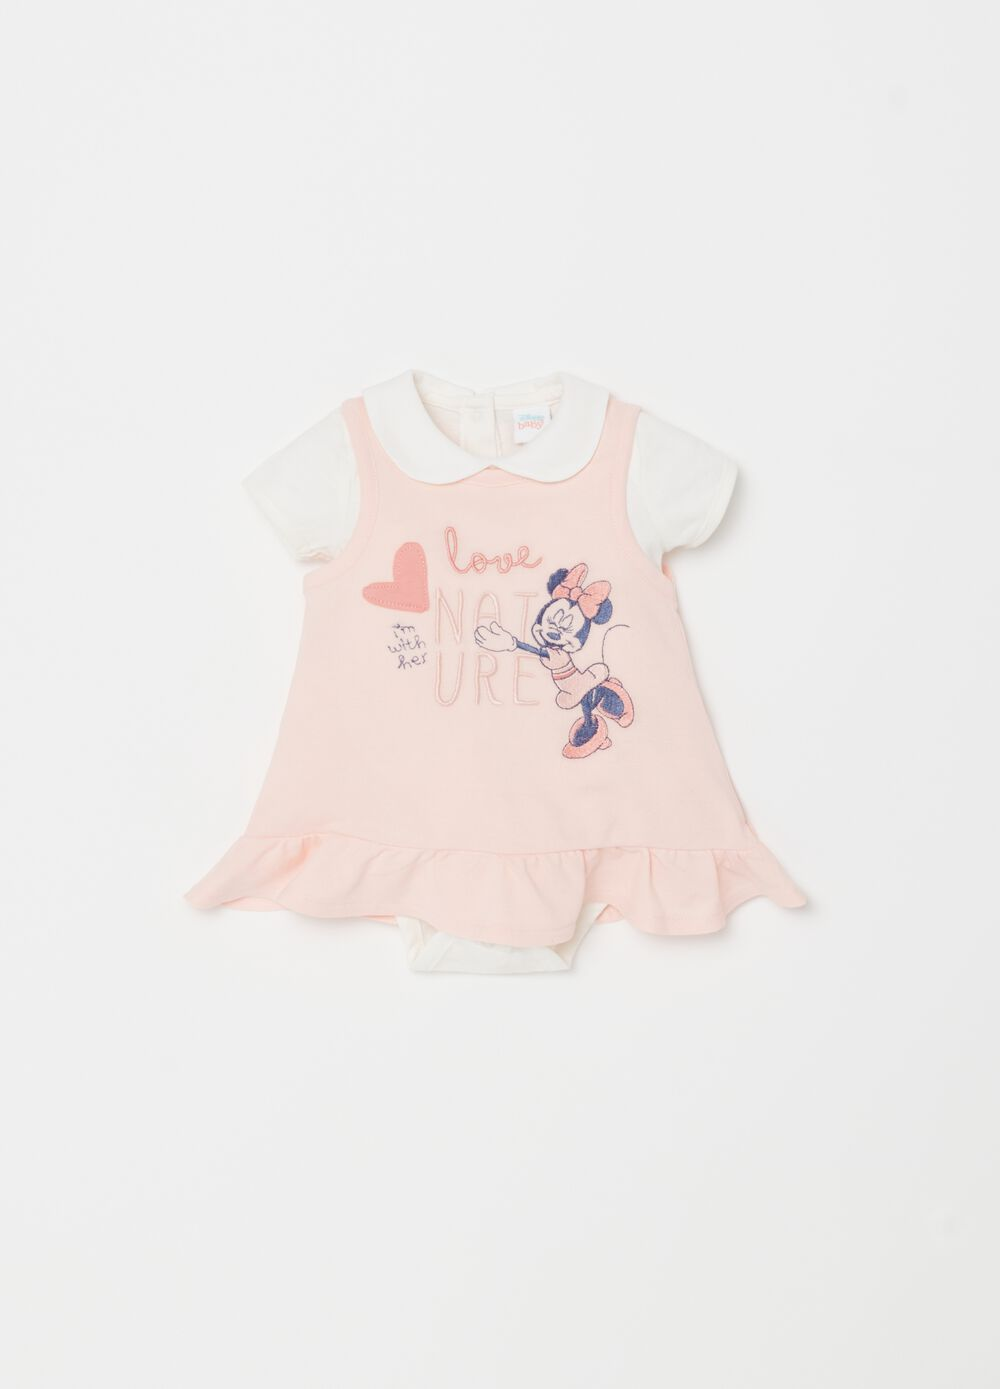 Disney Baby Minnie Mouse bodysuit and dress set